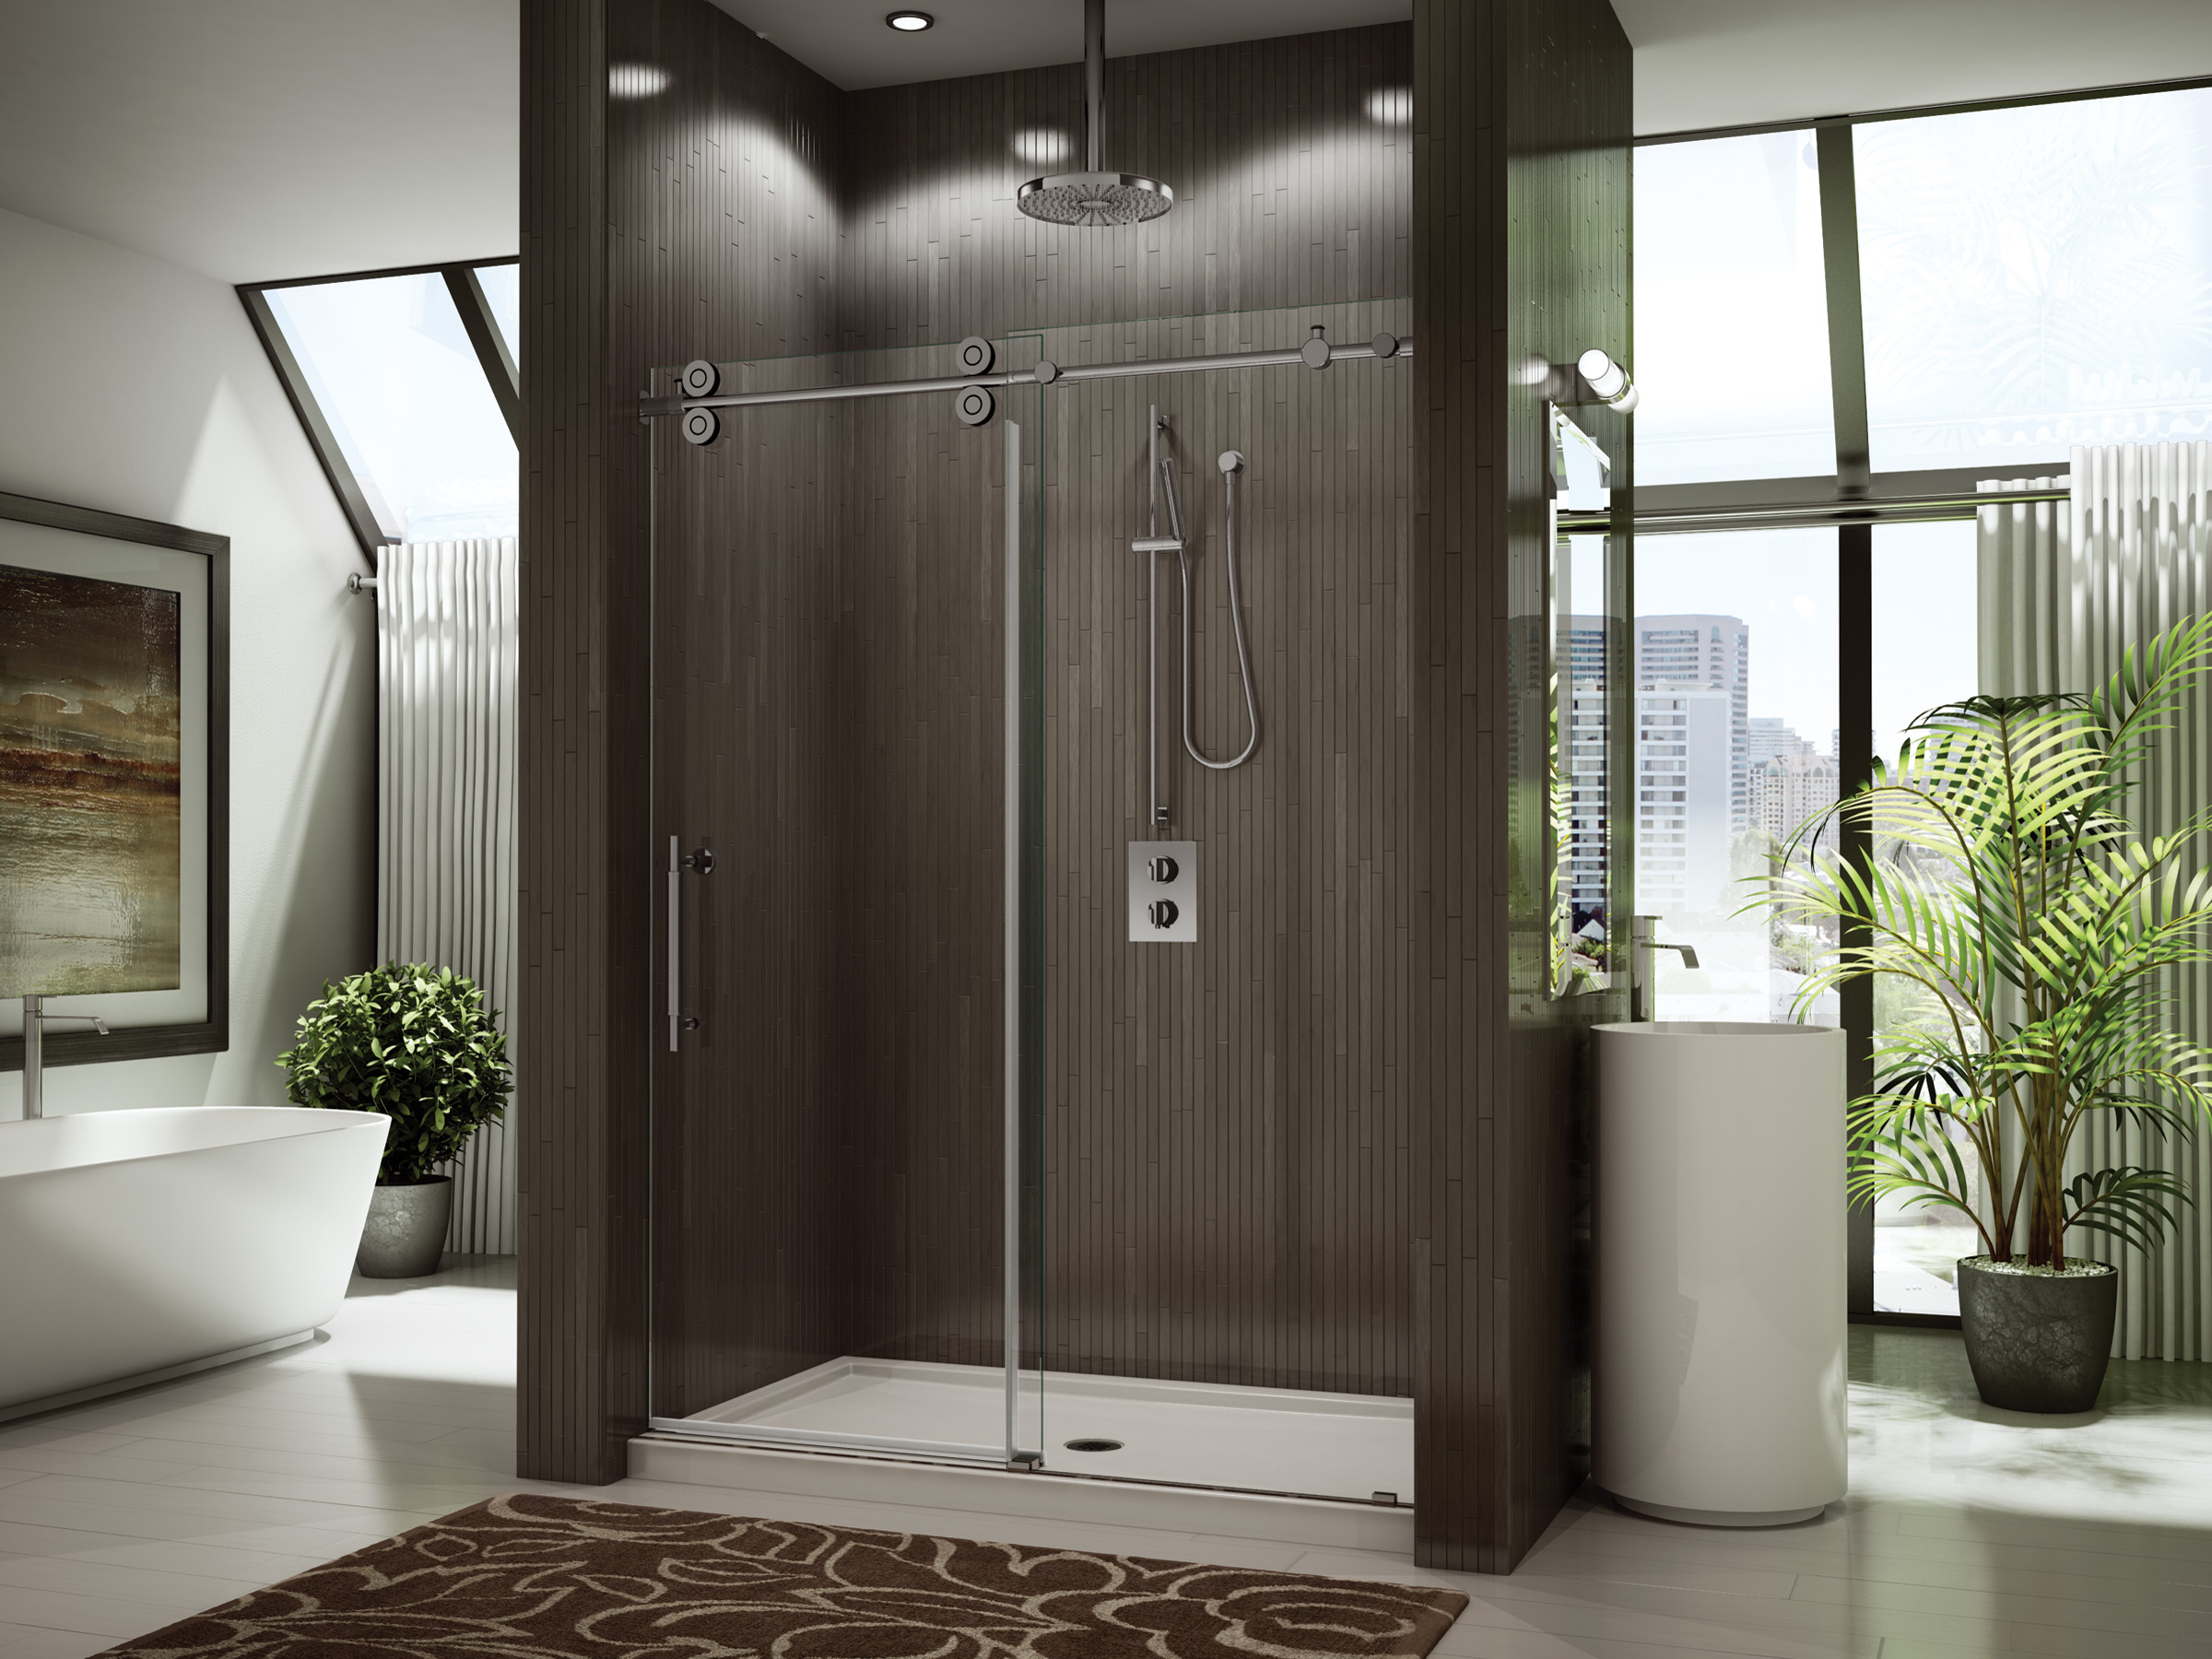 novara in doors peel tile product line sliding apollo unique shower